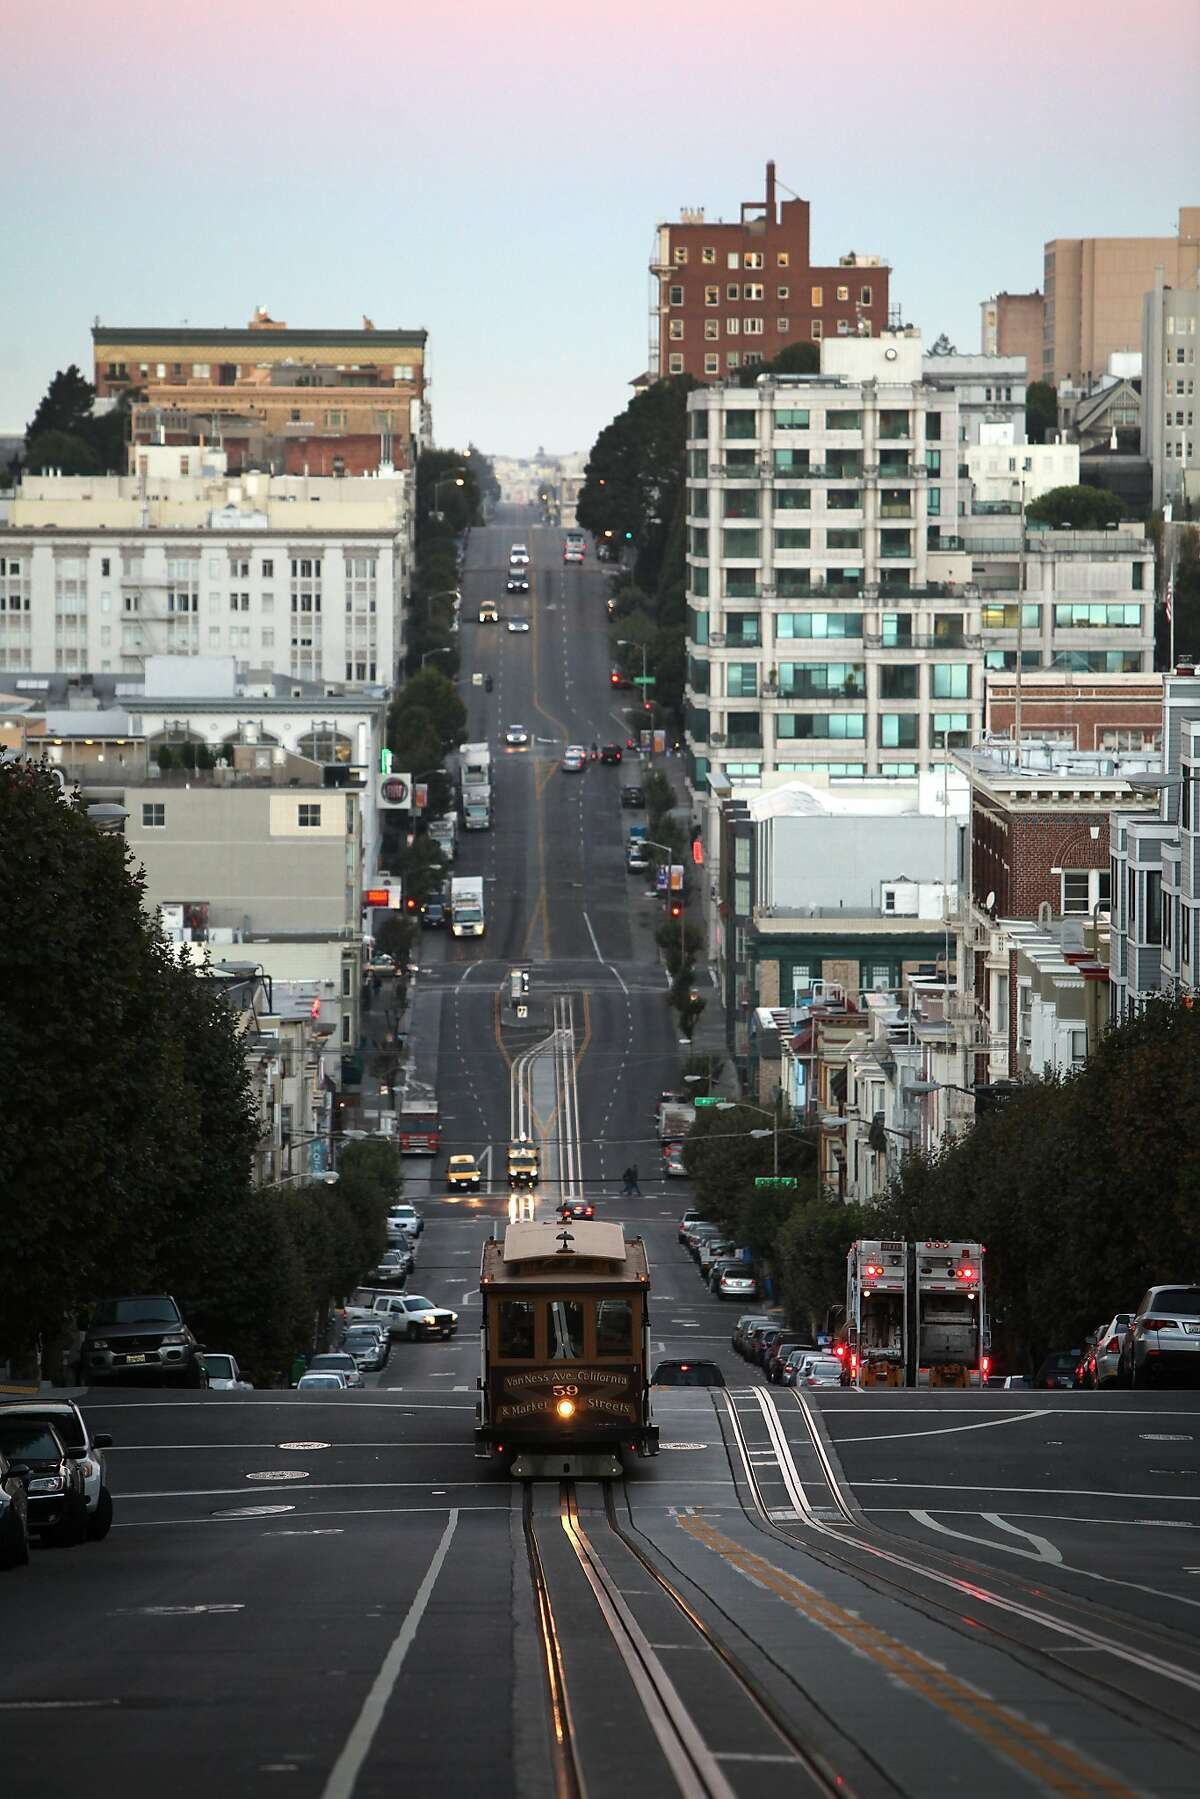 A cable car ascends Nob Hill on California Street at Leavenworth Street before sunrise on September 6, 2013 in the Nob Hill area of San Francisco, Calif.